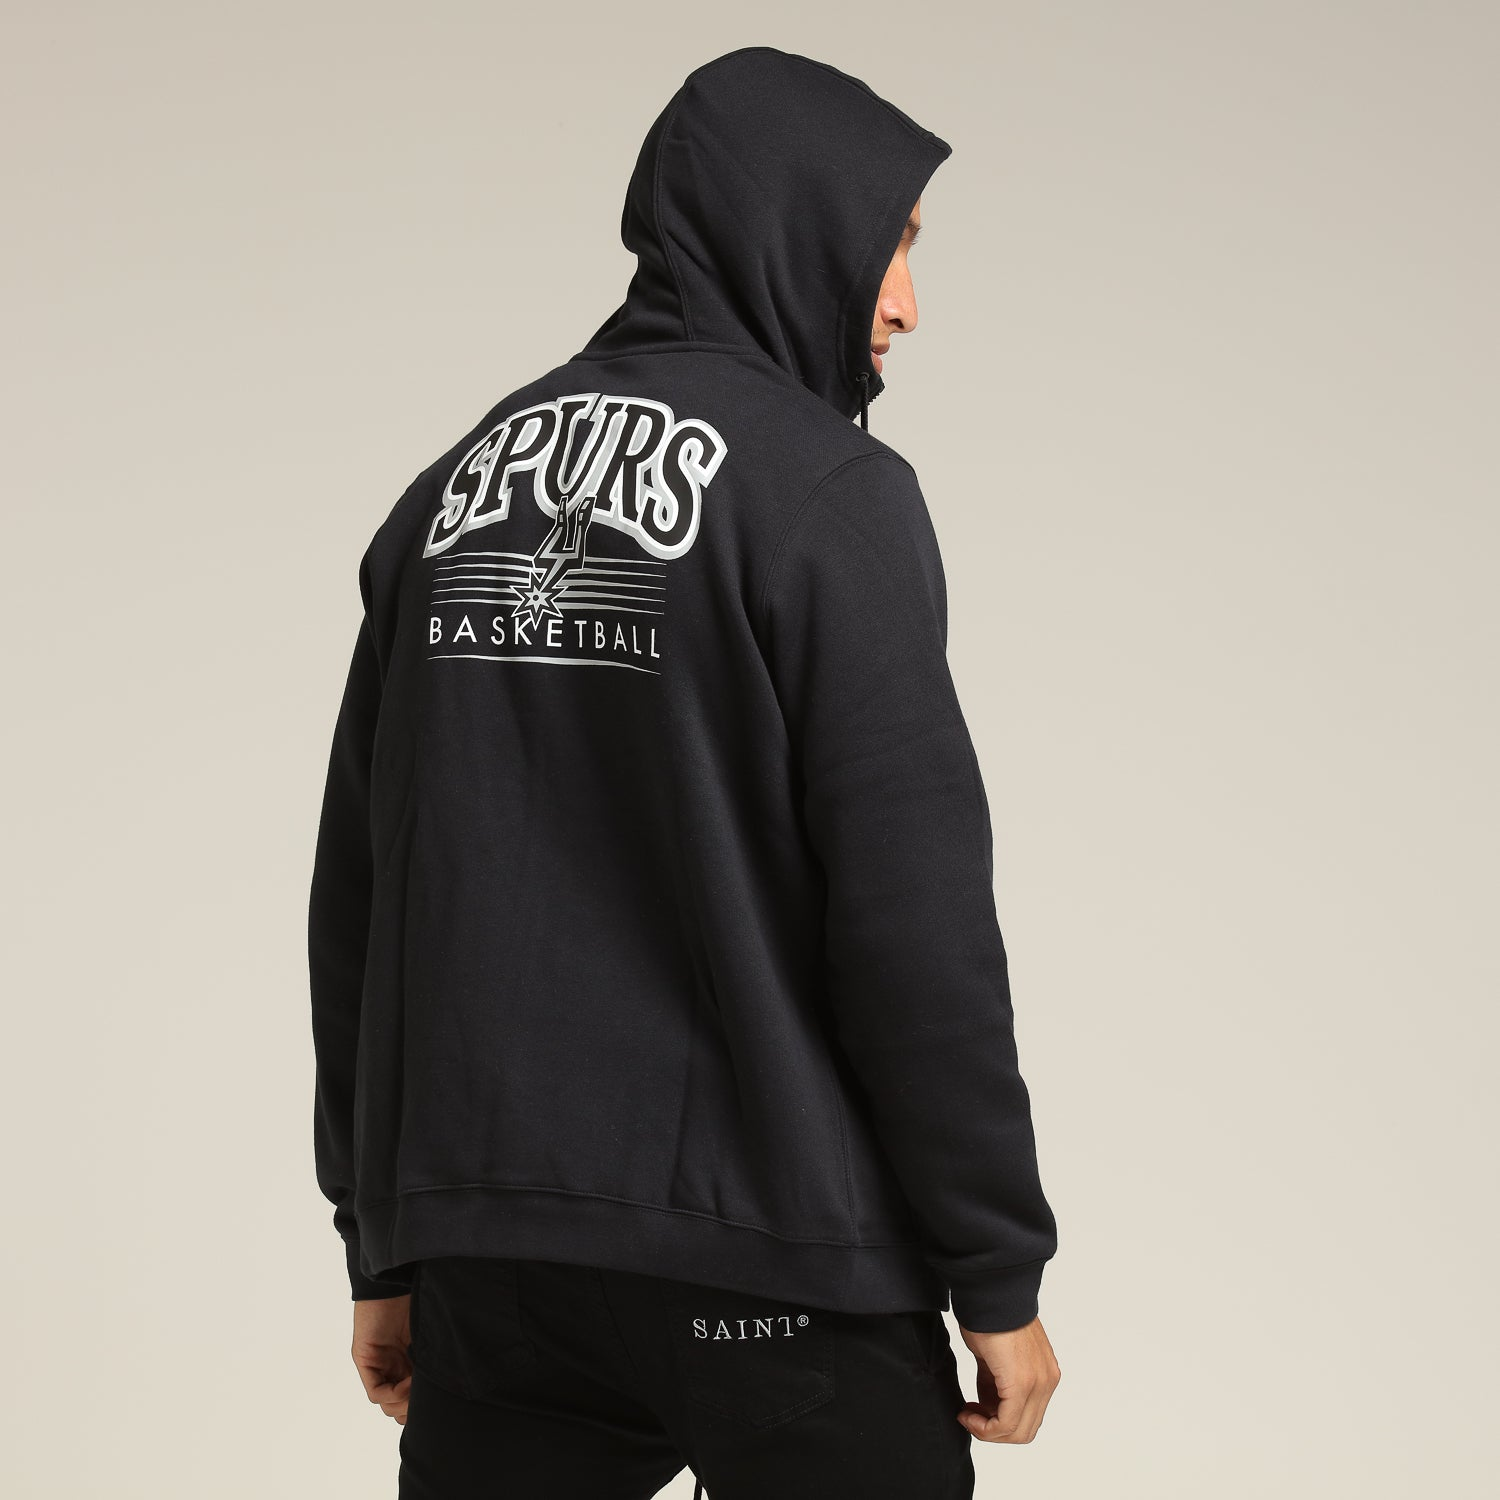 Details about Adidas NBA Men's San Antonio Spurs All Over Print Gothic Hoodie, Black